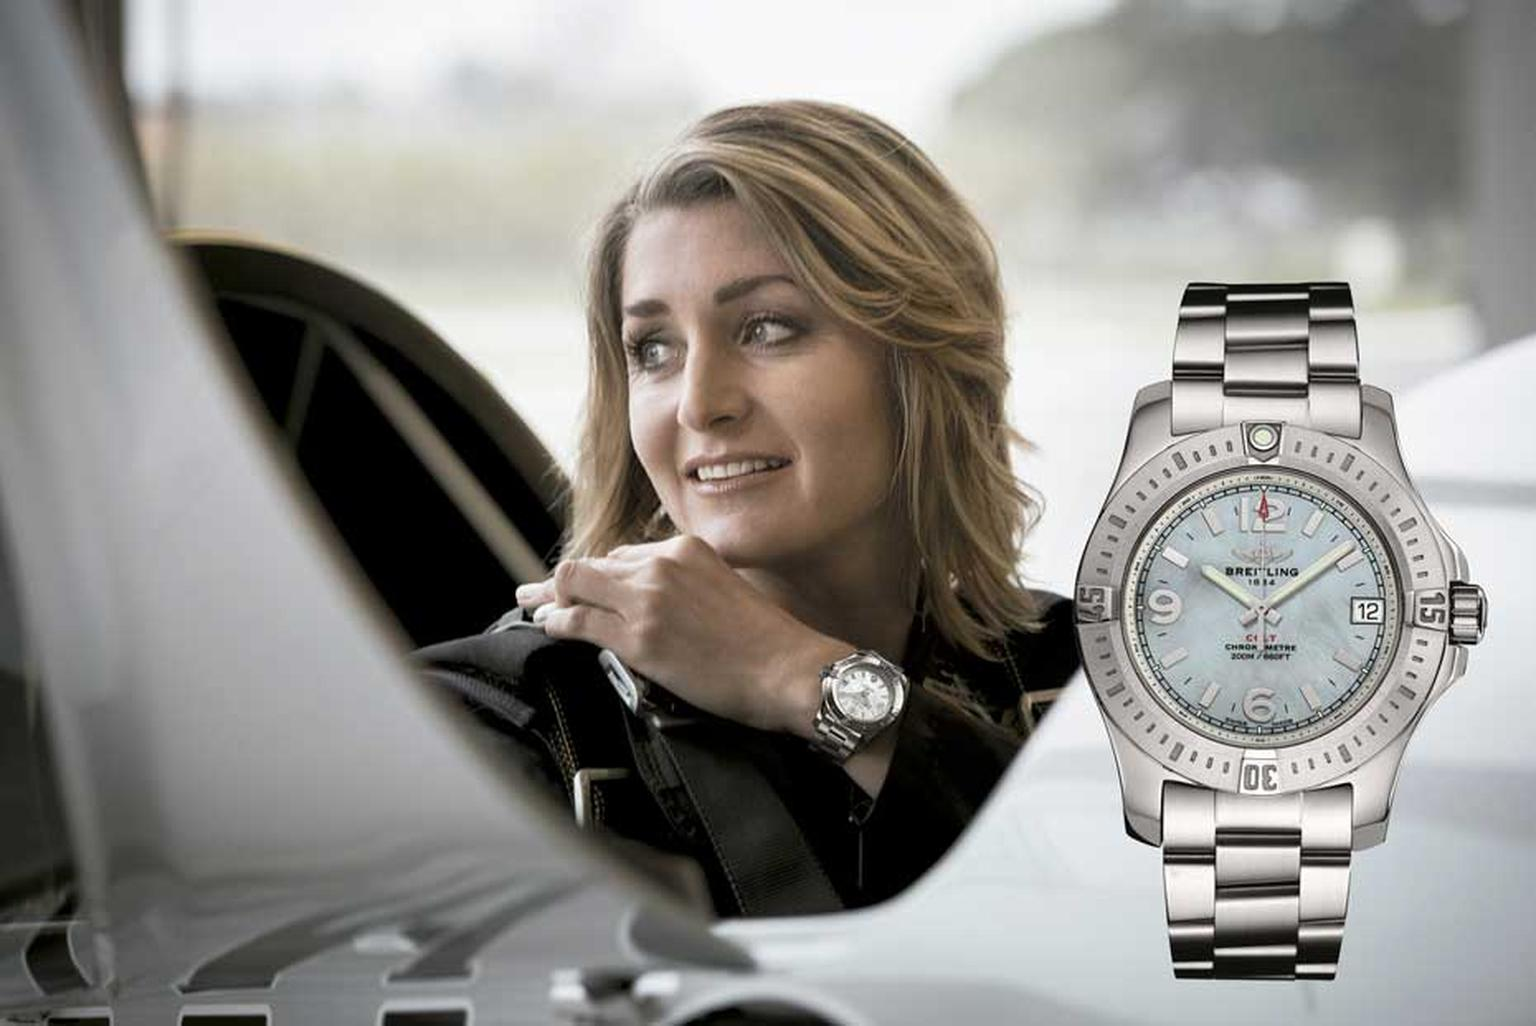 The Breitling Colt watch for women in 36mm stainless steel is the same model worn by pilot and aerobatics champion Aude Lemordant for her thrilling stunts.